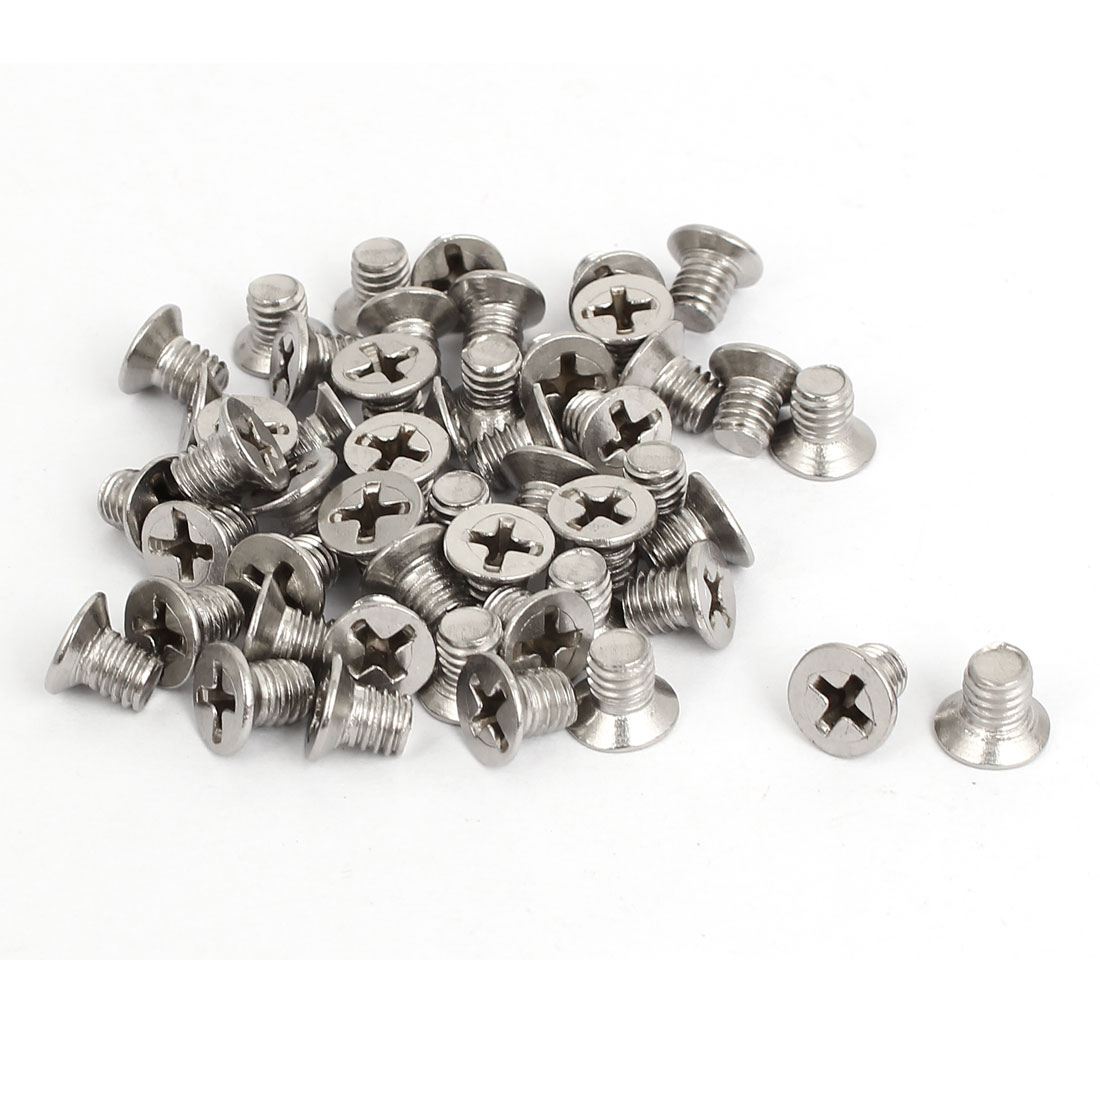 M6x8mm Stainless Steel Countersunk Flat Head Cross Phillips Screw Bolts 50pcs